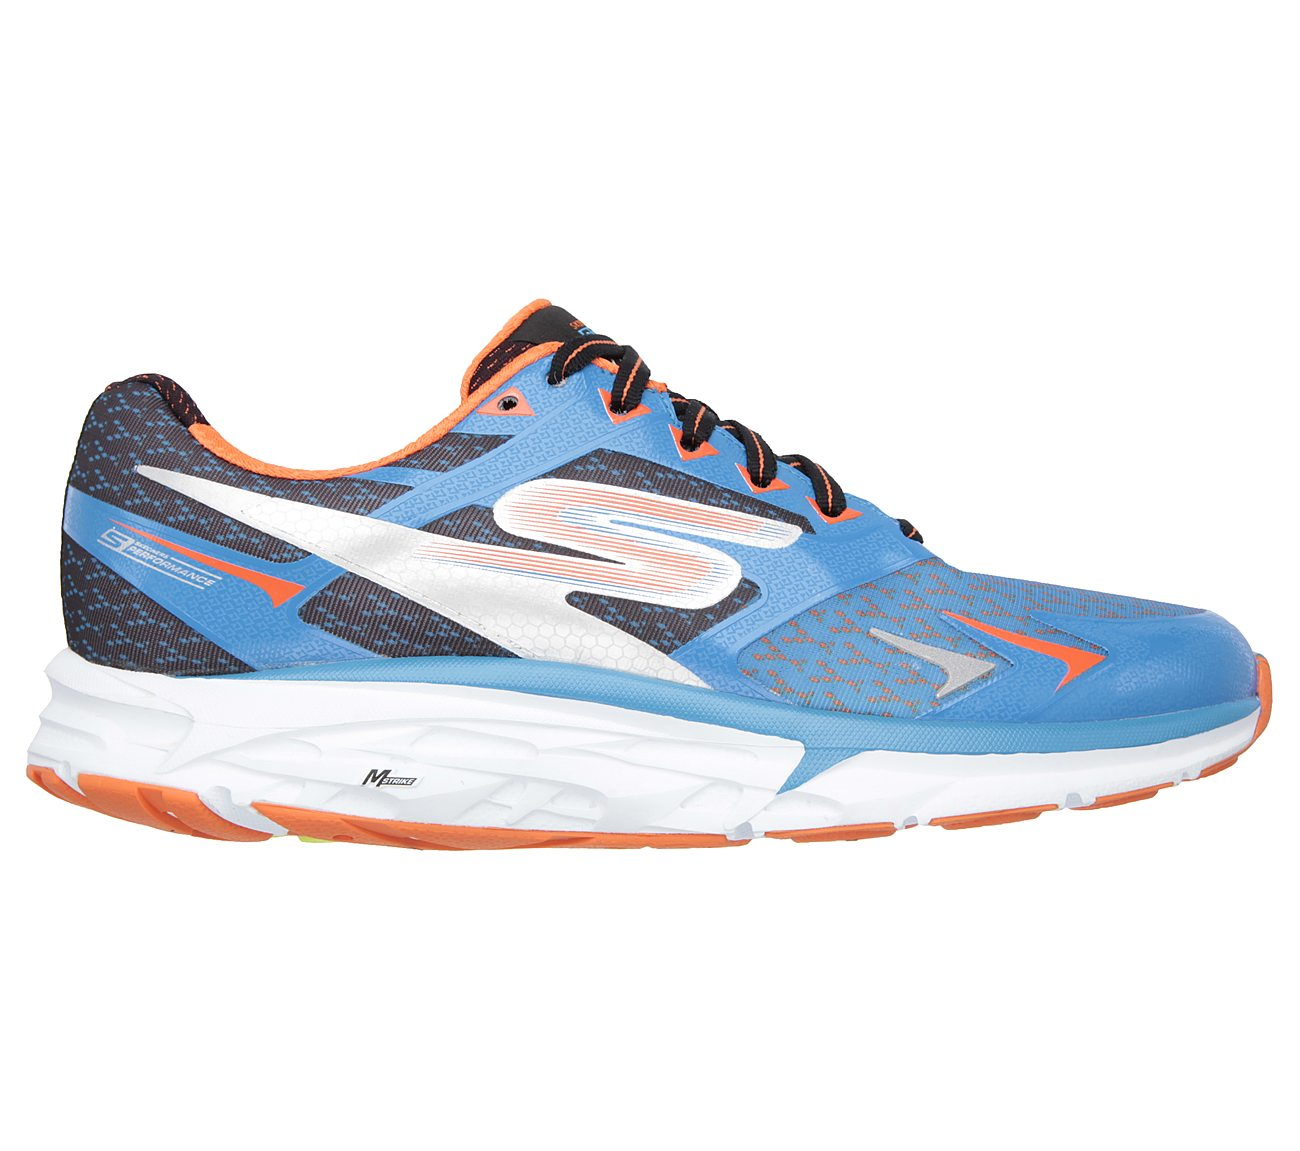 789b1bb2a375 Buy SKECHERS Skechers GOrun Forza Skechers Performance Shoes only ...